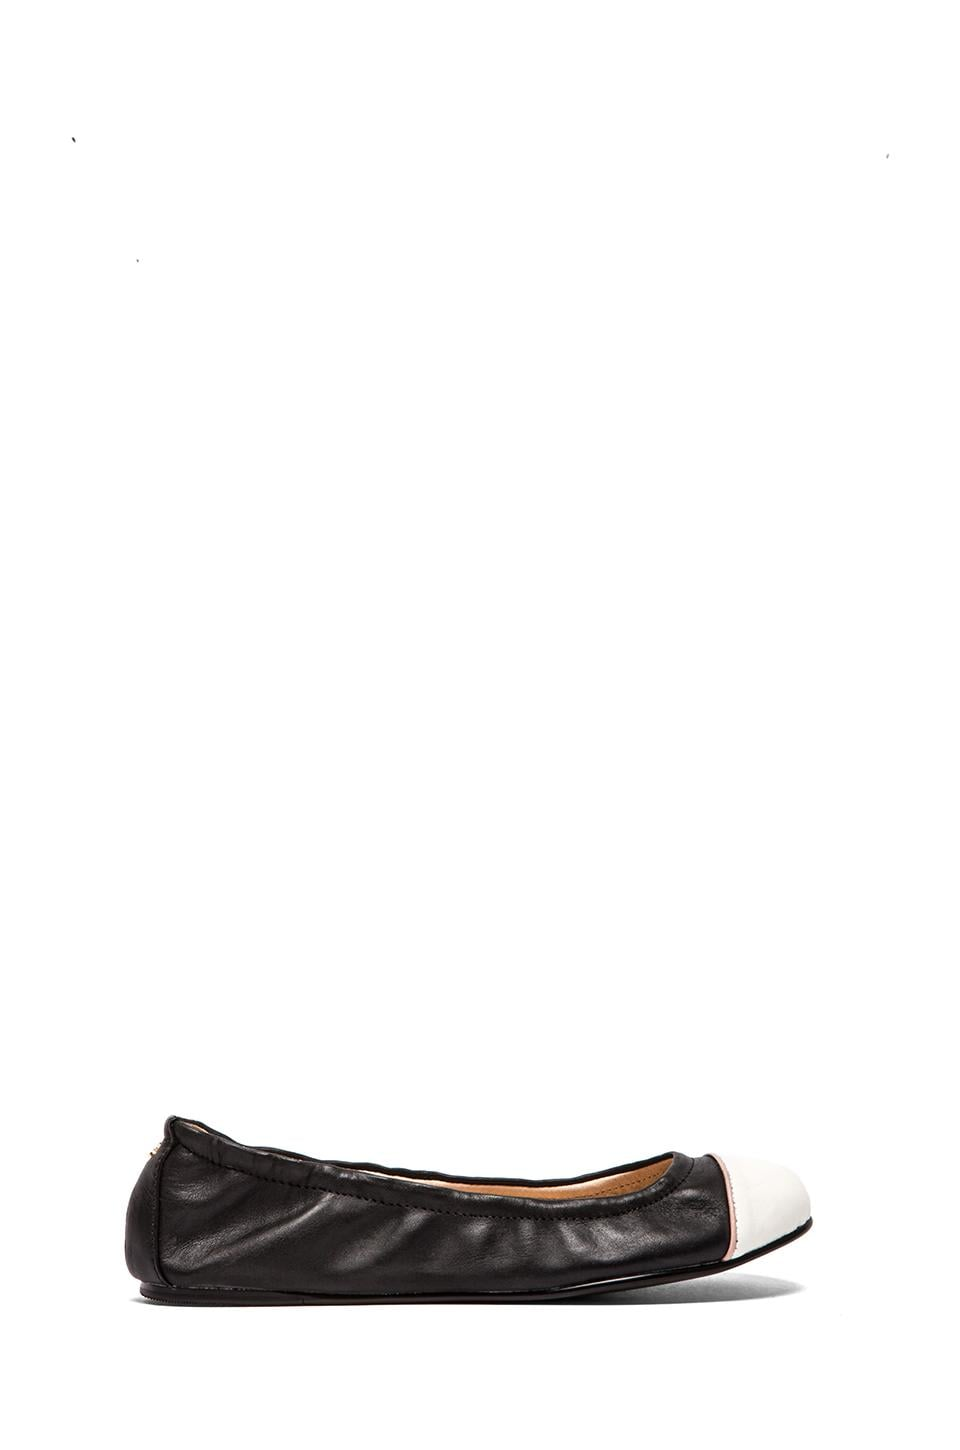 Yosi Samra Marni Flexable Contrast Flat in Black & White